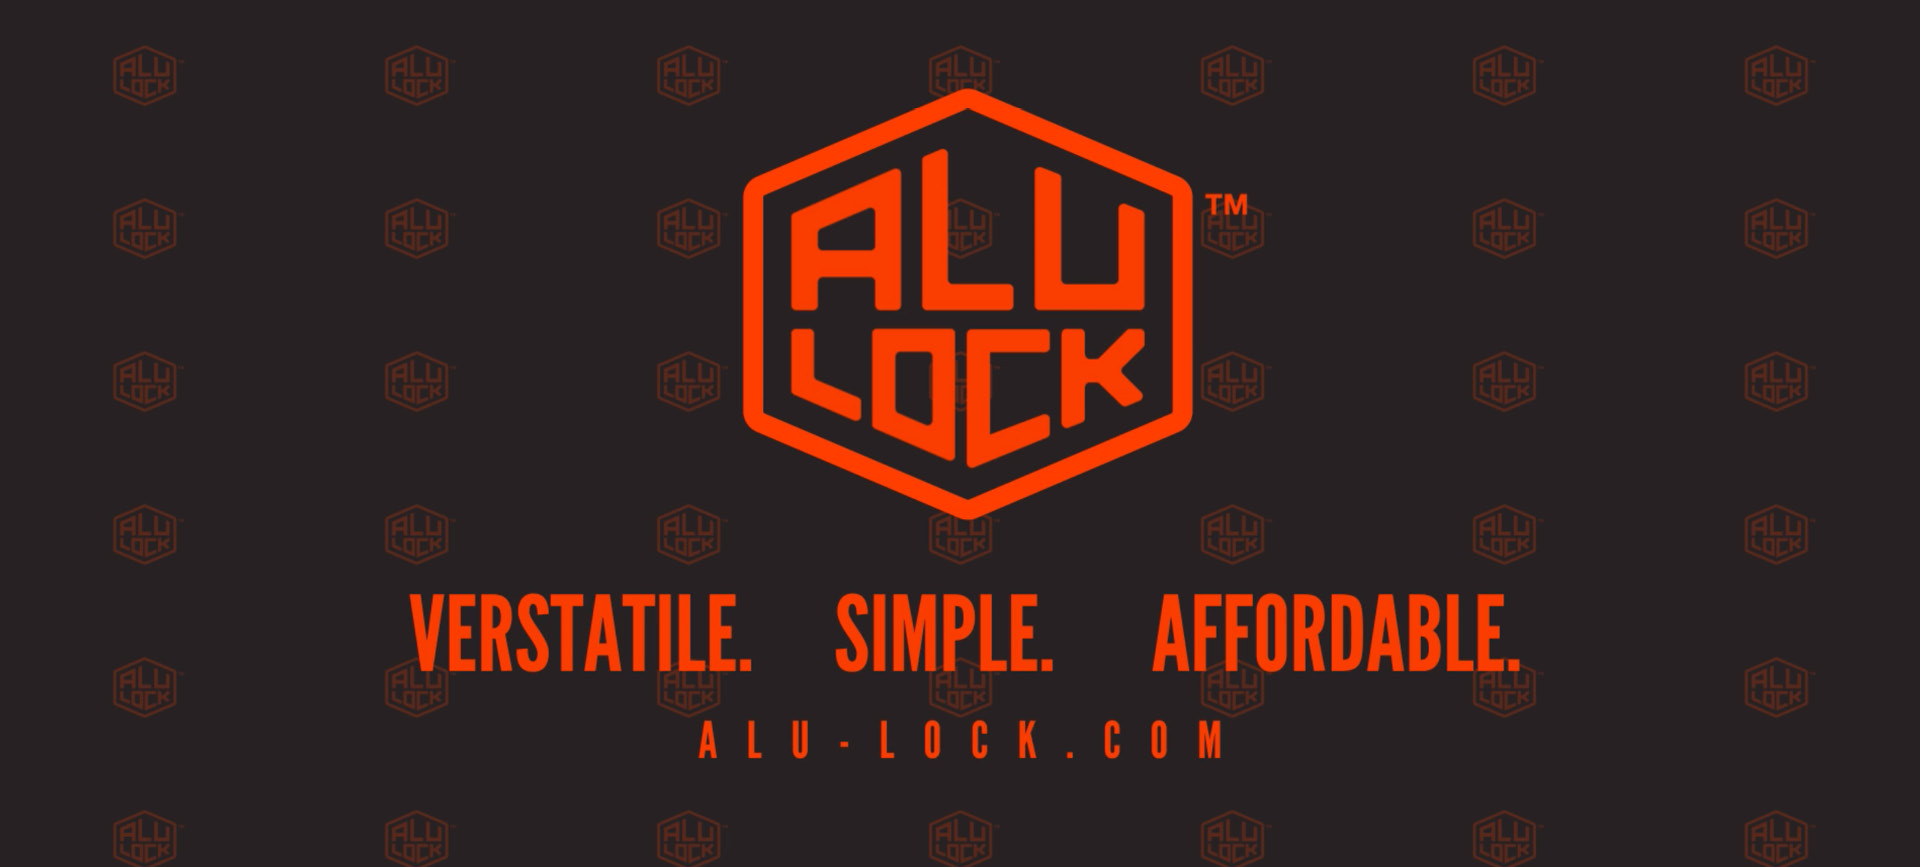 Ali Lock - Versatile, Simple, Affordable